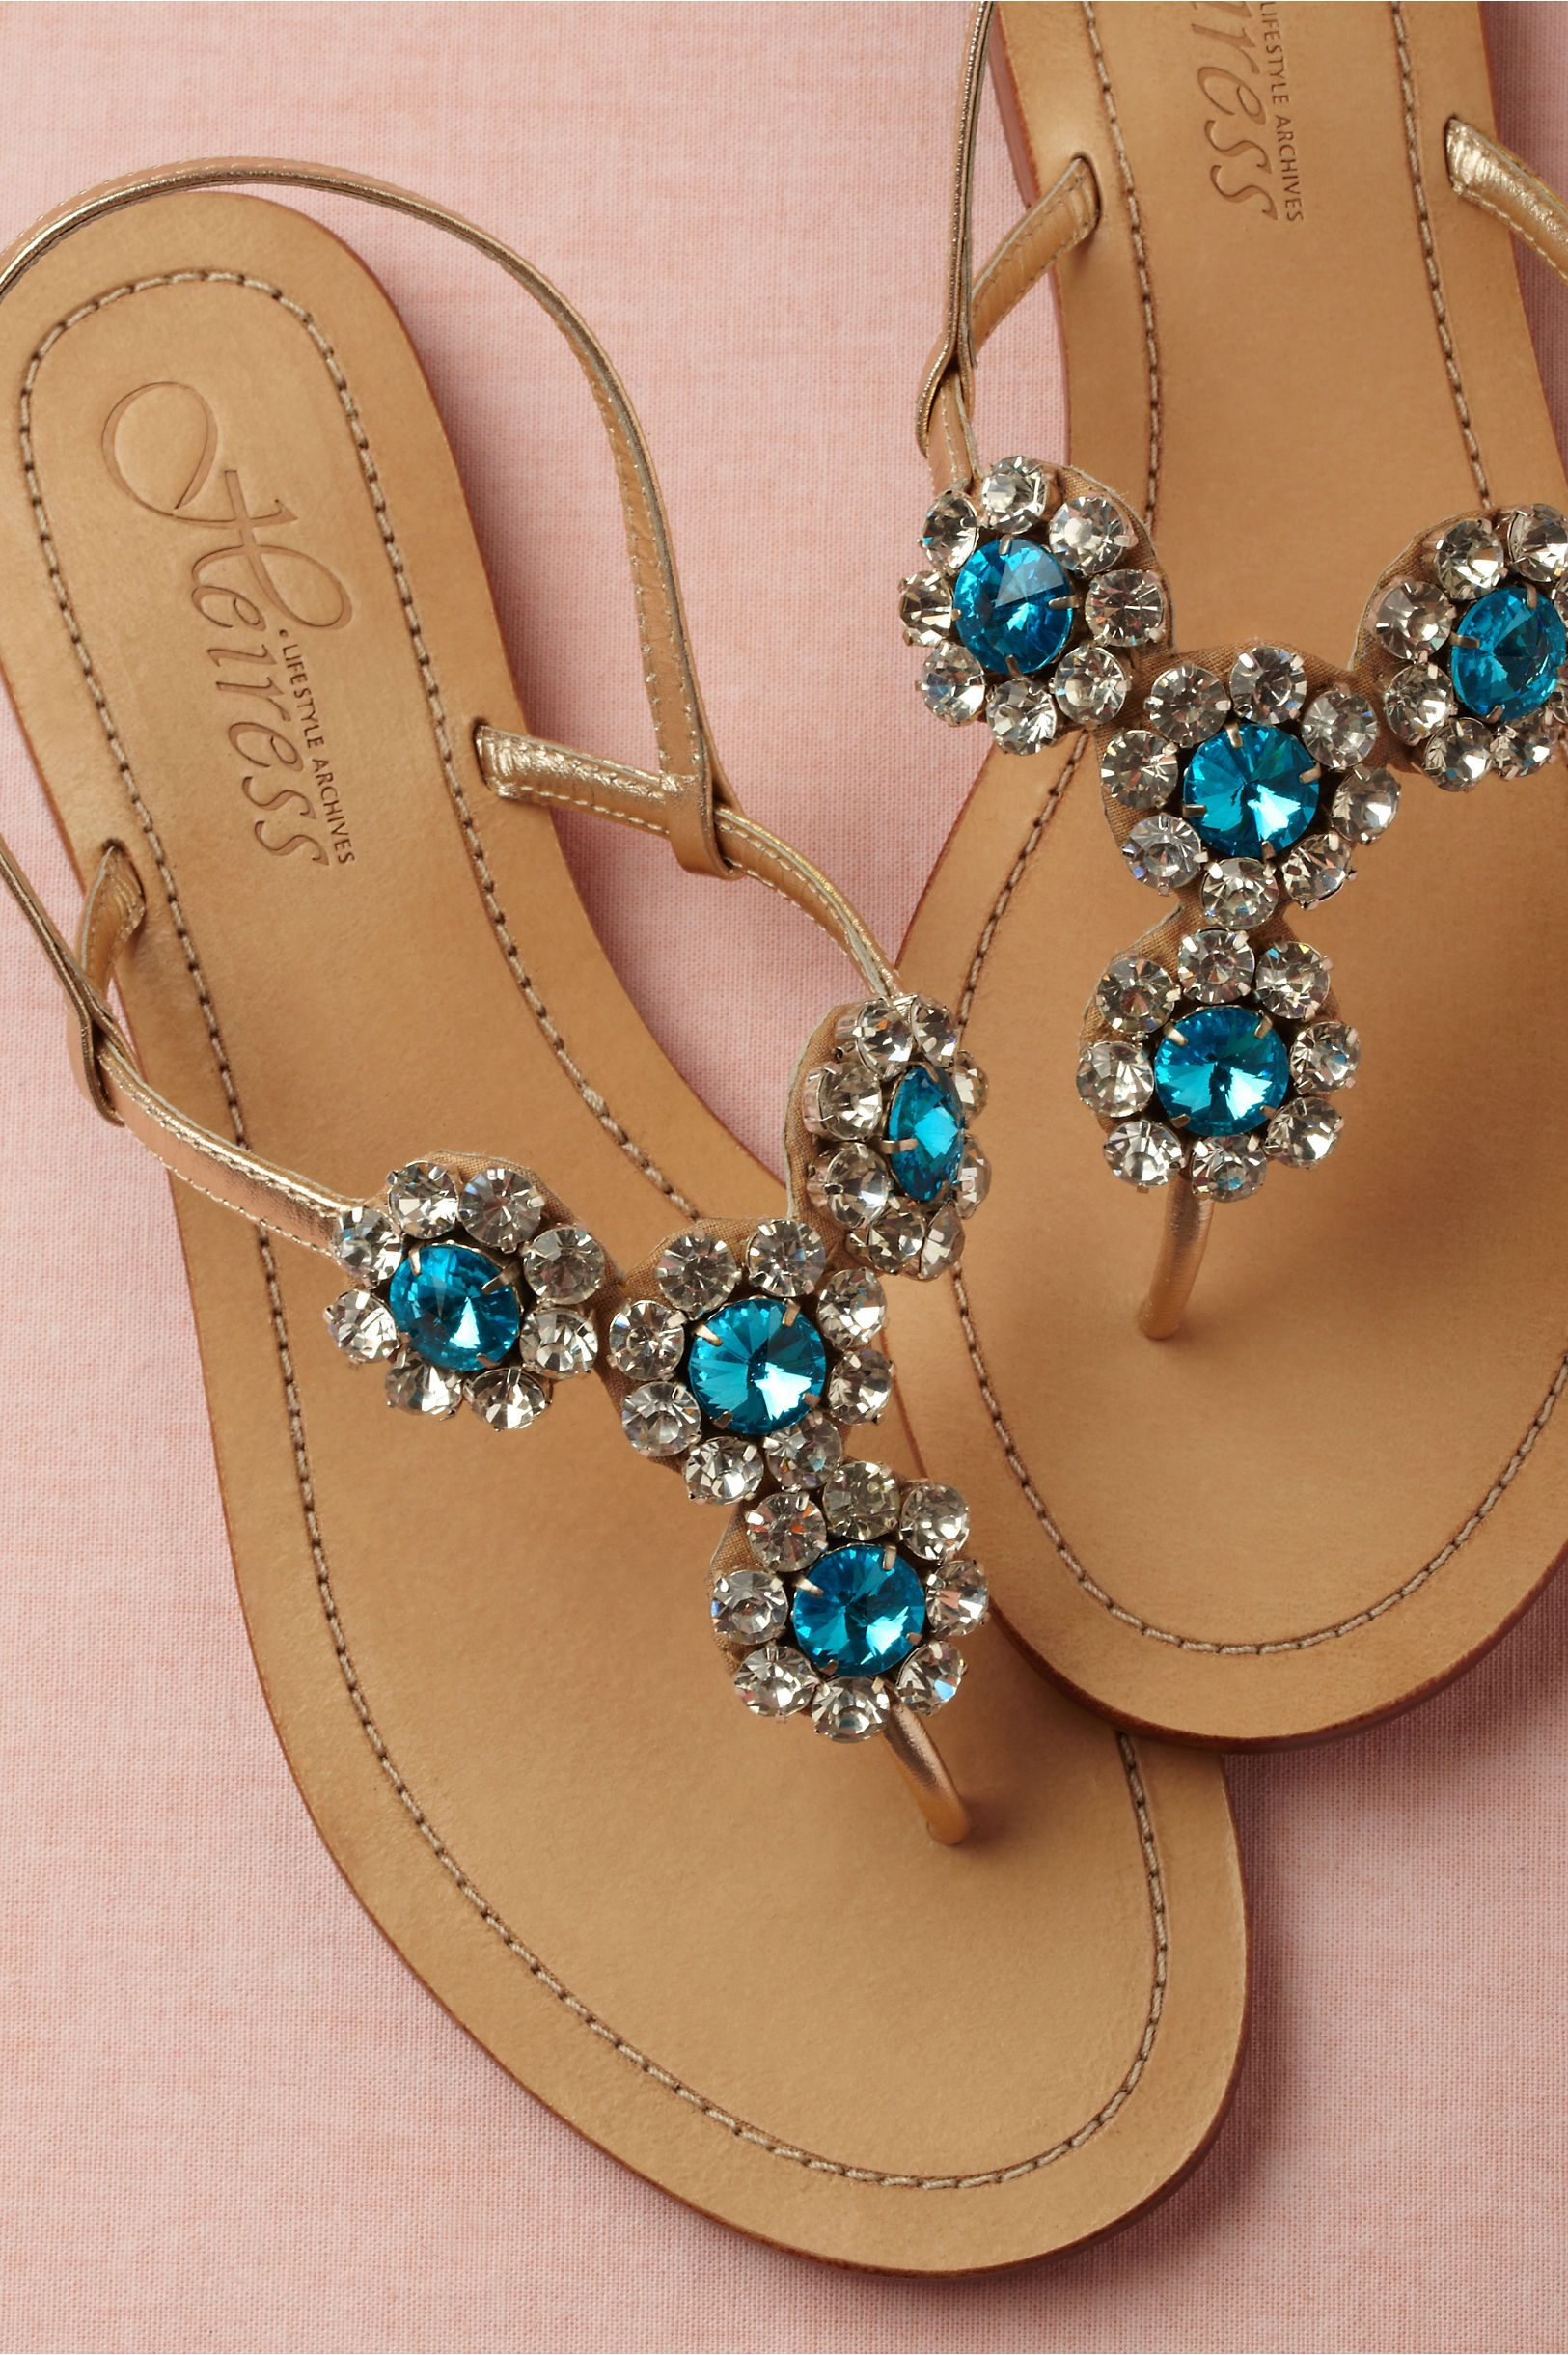 7c06c95757e2b Jewels sandals. Maroma Sandals - Radiant blue flowers on a simple sandal  silhouette.